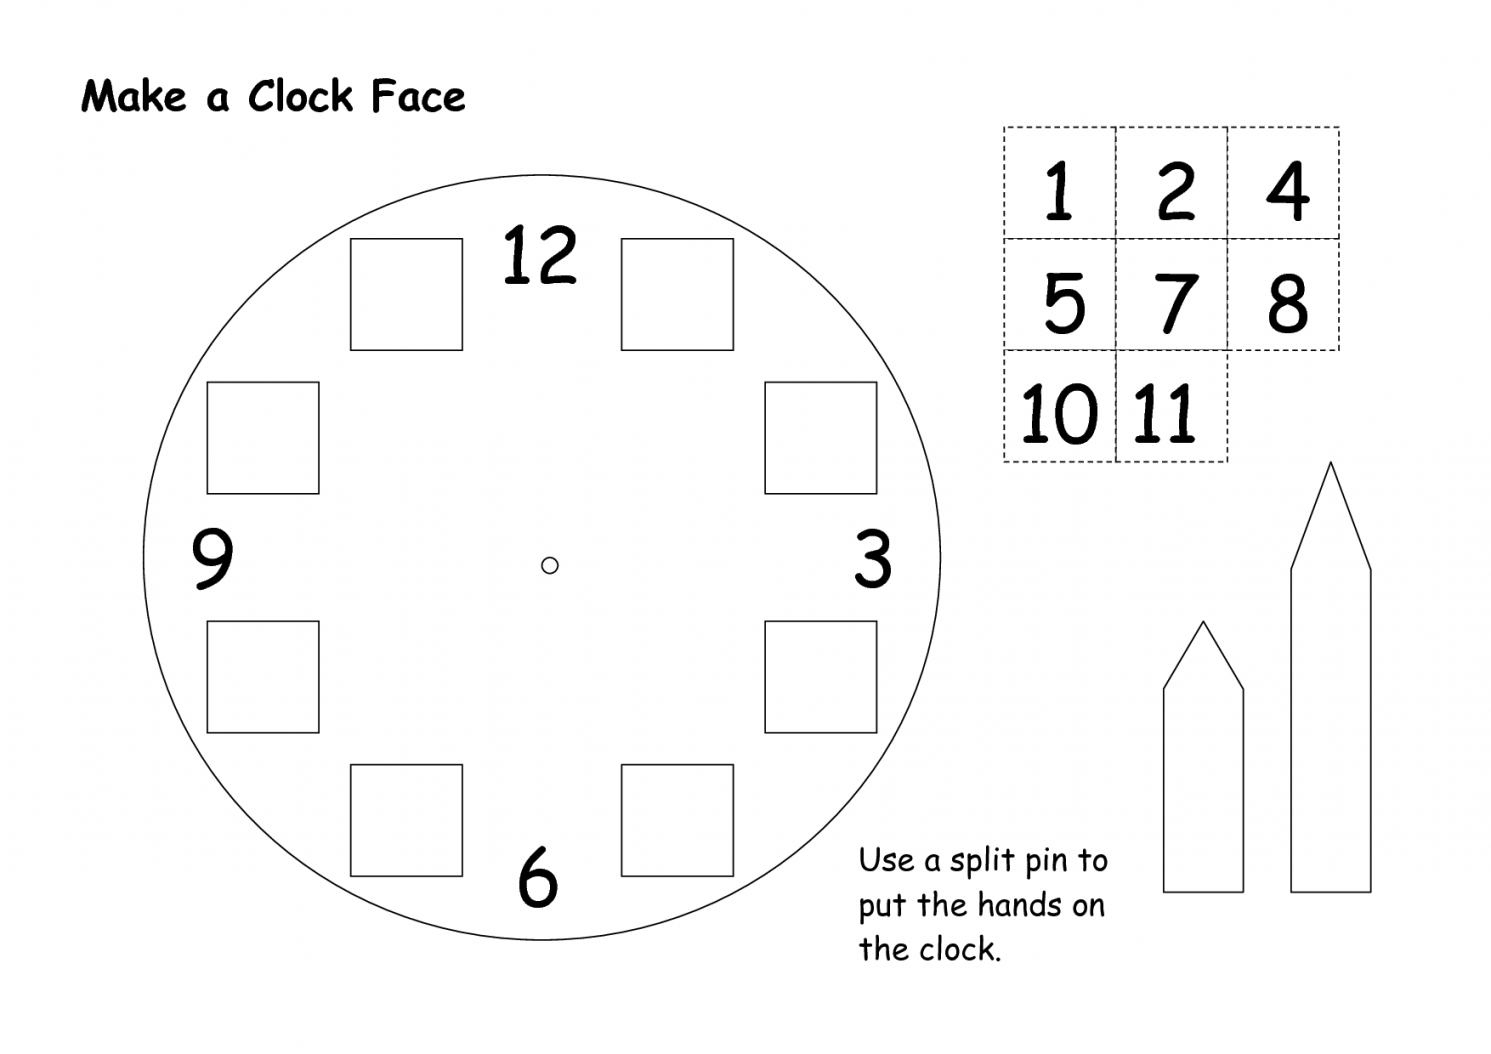 Ins Pi Re Math Make Your Own Class Set Of Clocks Von Make Your Own Clock Photo Haus Design Ideen